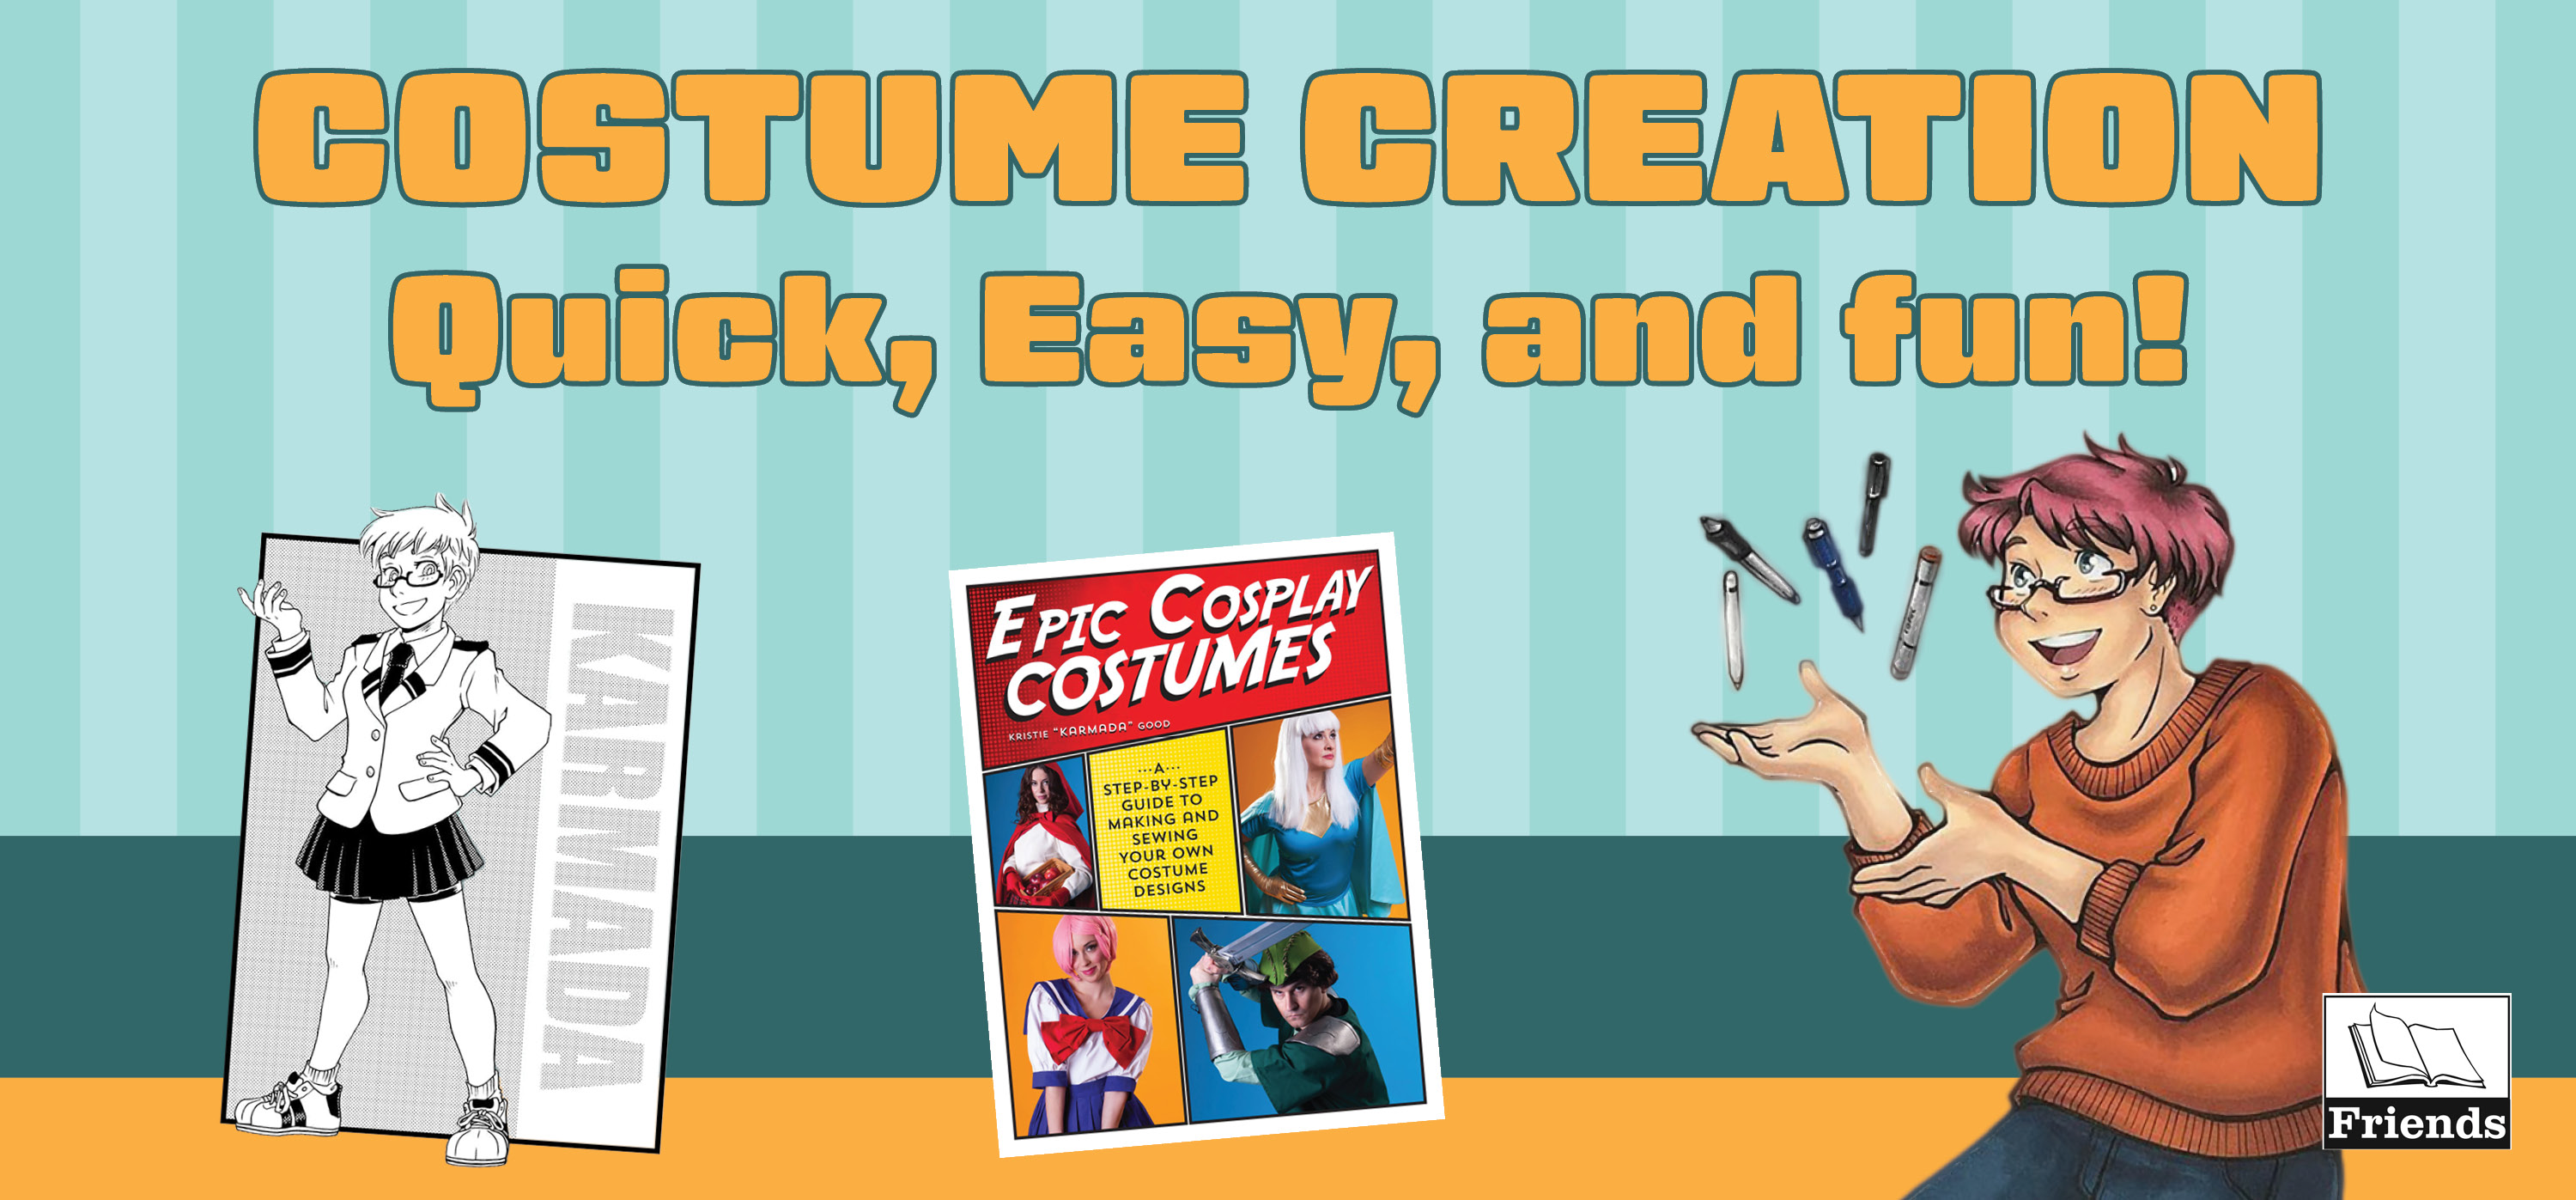 Costume Creation: Quick, Easy, and Fun!